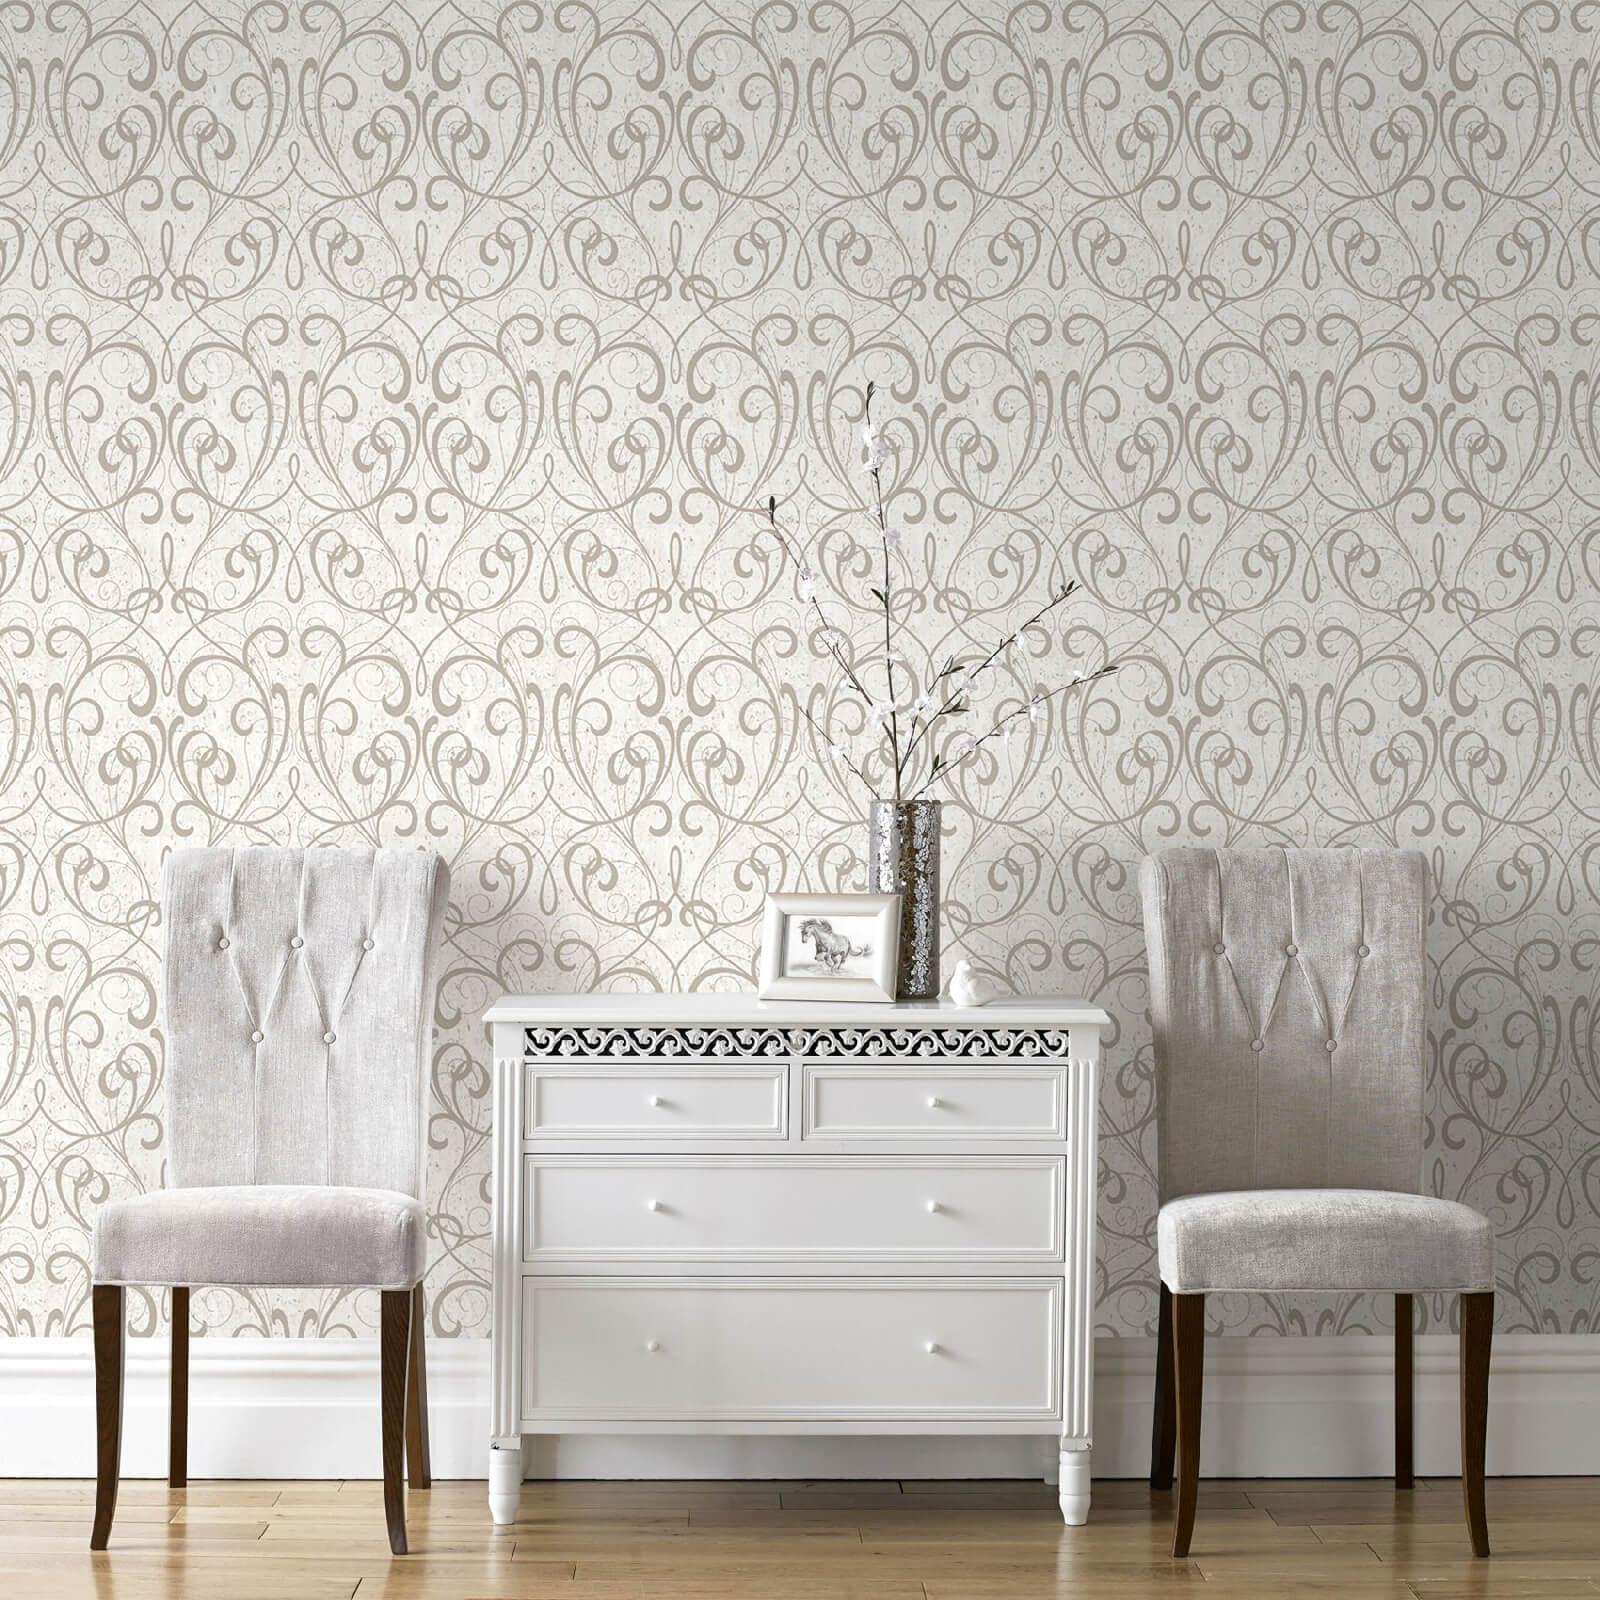 Boutique Cork Damask Metallic Textured Wallpaper - Cream/Pale Gold